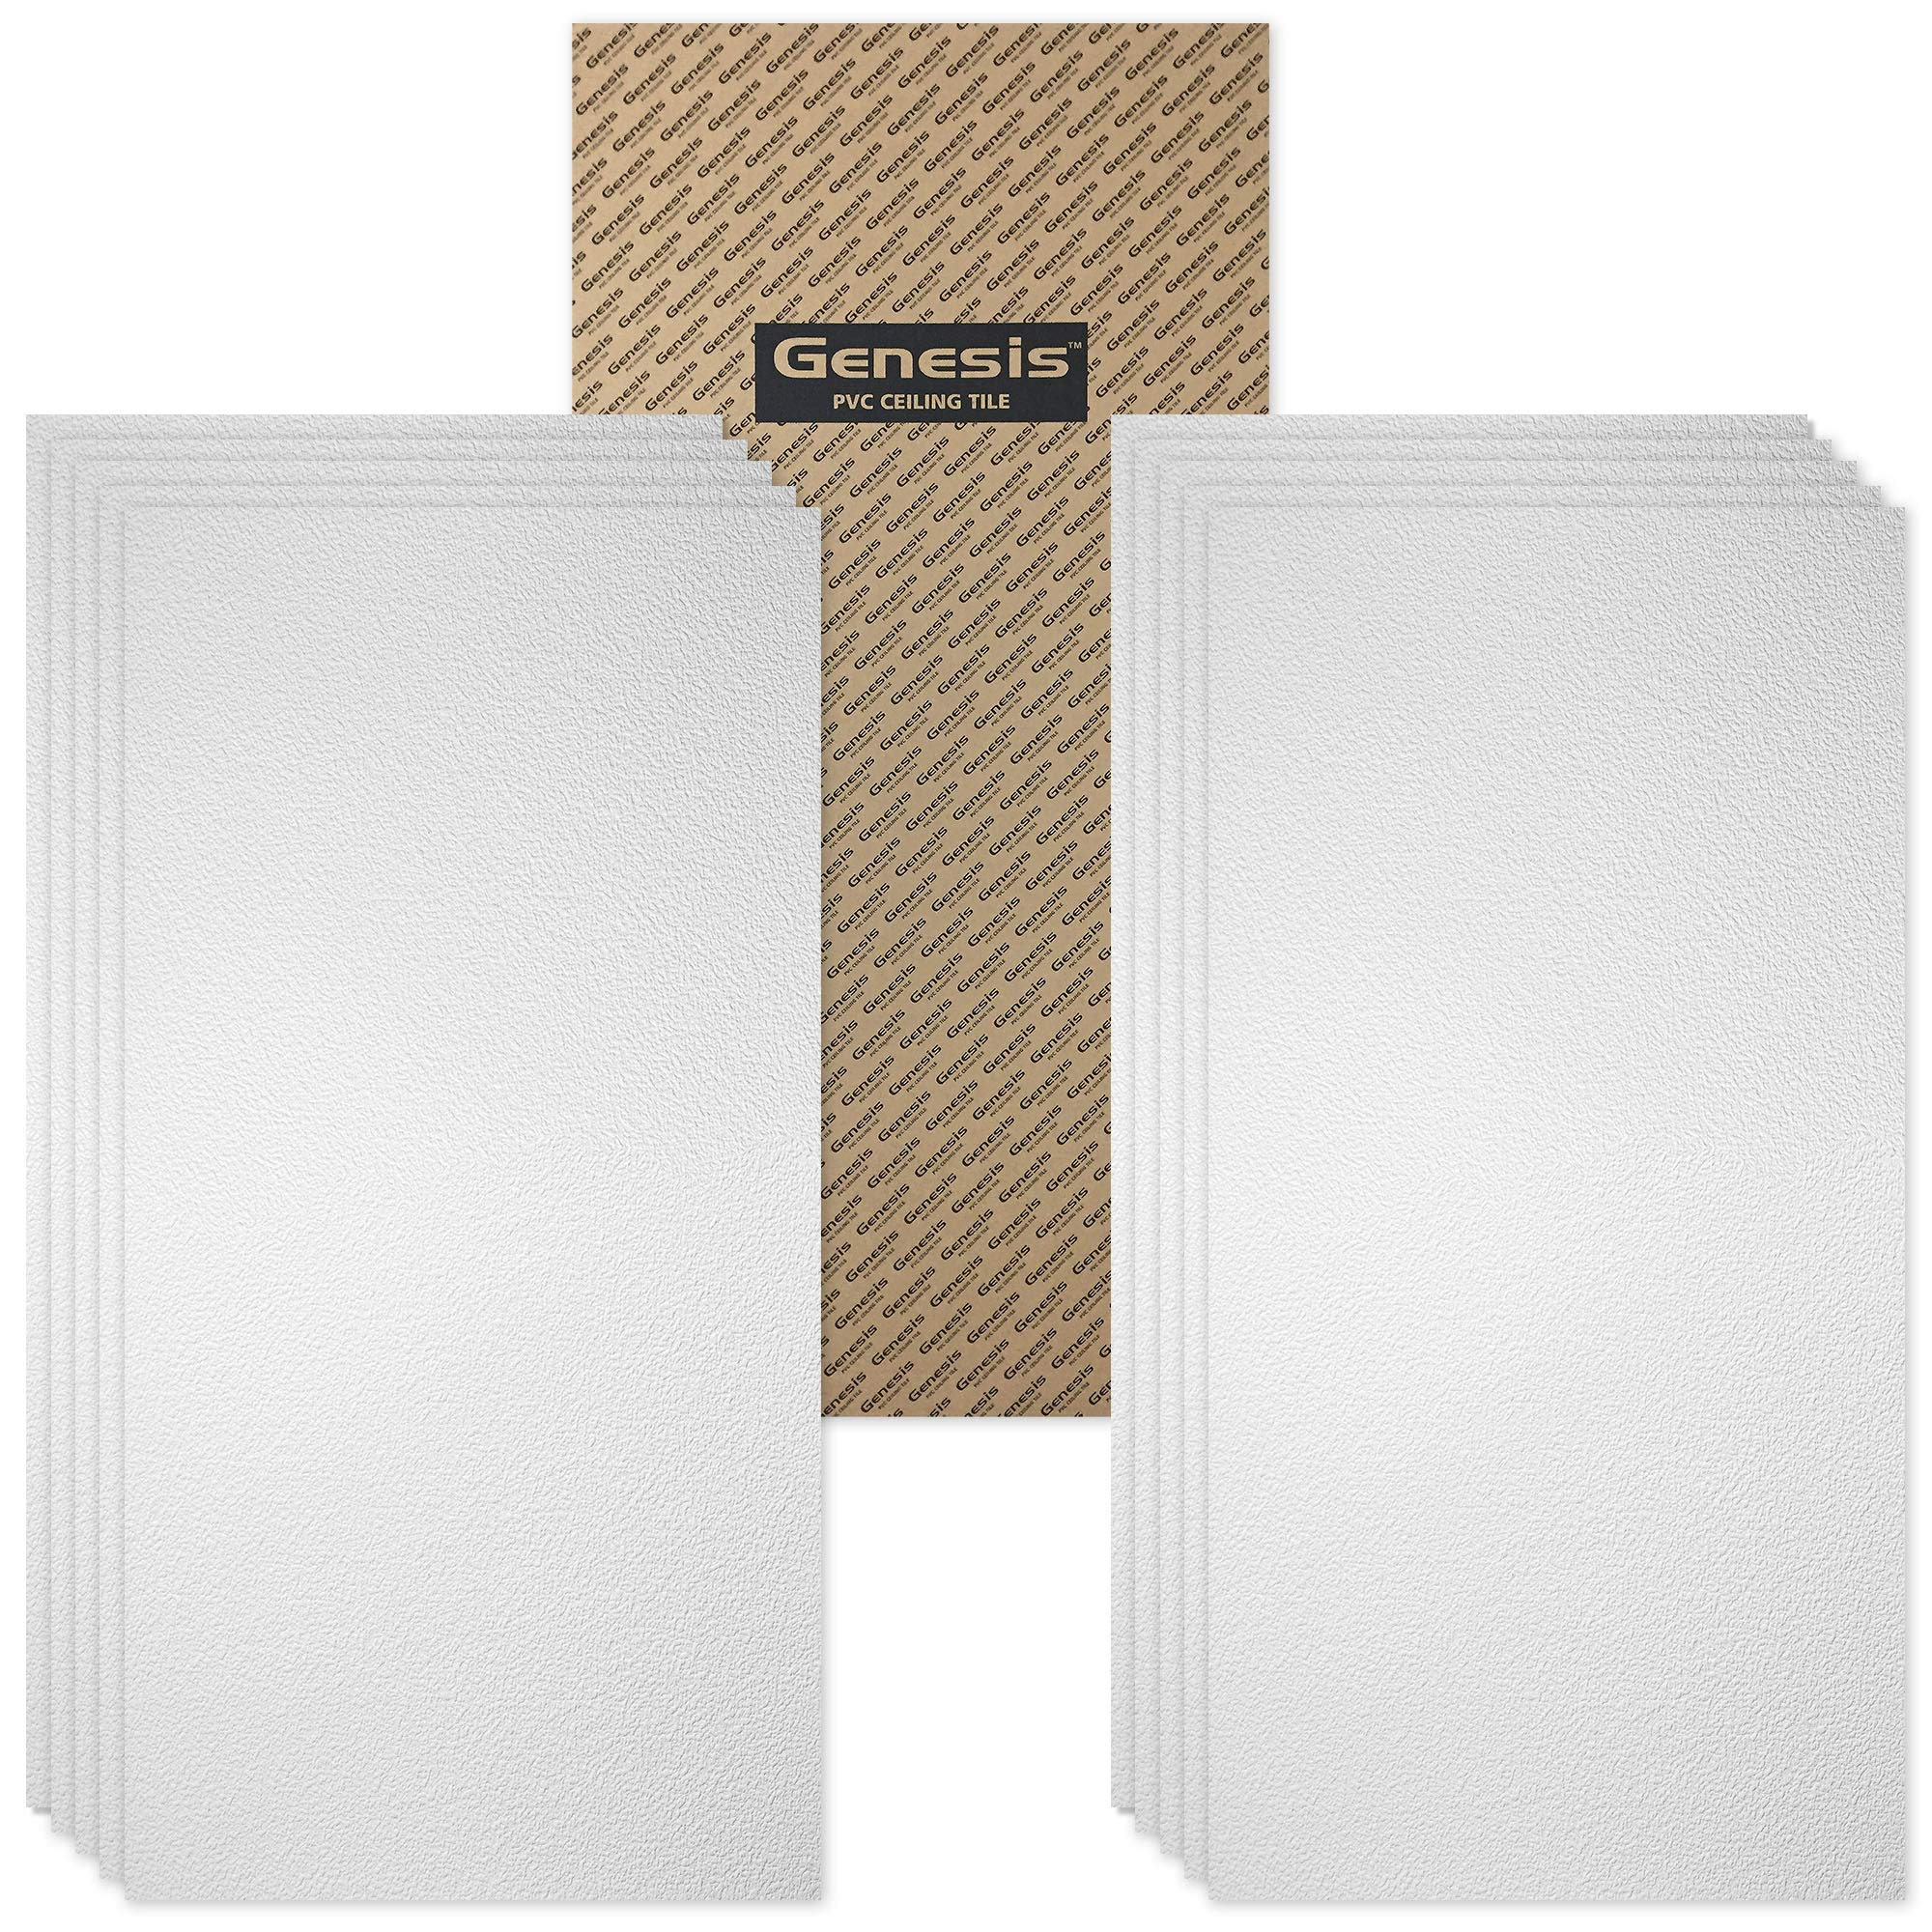 Genesis Fasade 2ft x 4ft Stucco Pro White Ceiling Tiles - Easy Drop-in Installation - Waterproof, Washable and Fire-Rated - High-Grade PVC to Prevent Breakage - Package of 10 Tiles by Genesis